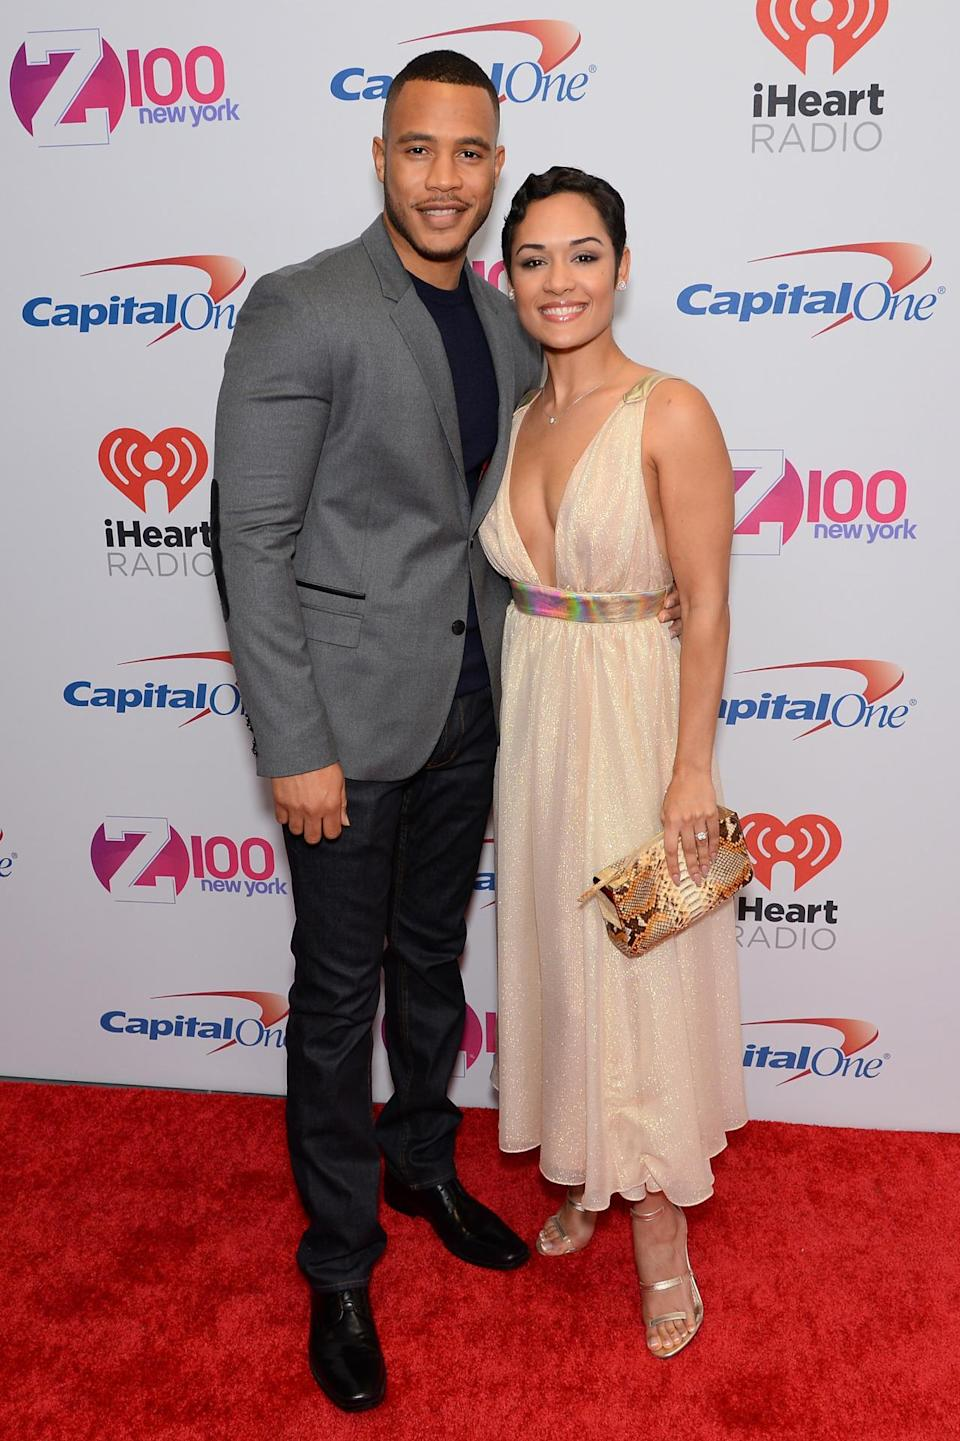 <p>And now for an adorable couple moment. <i>Empire </i>stars Trai Byers and Grace Gealey looked too cute together last night as they hit the red carpet. Byers opted for a denim pants, a smart suit jacket, black shirt and black shoes while his fiancée went with this plunging champagne gown with a holographic belt.</p>